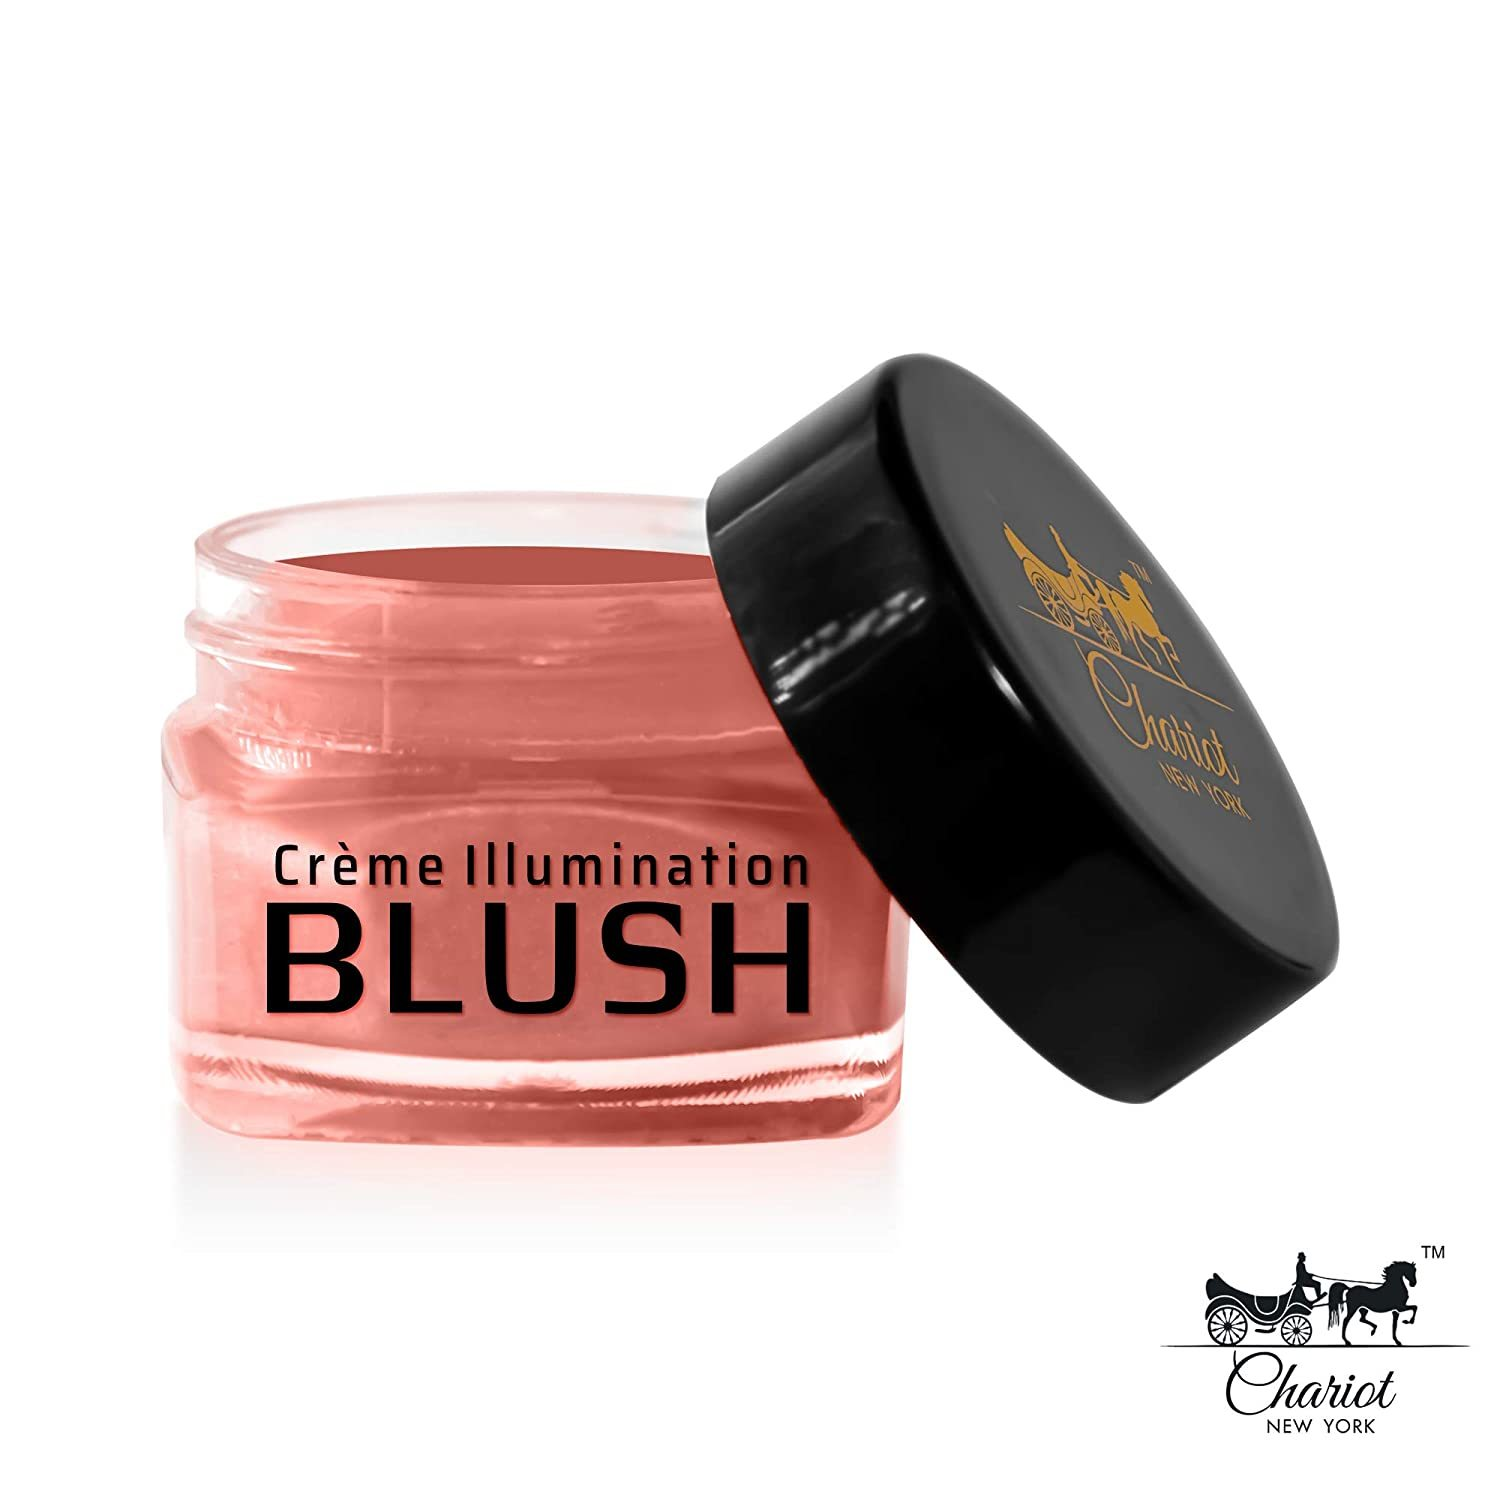 Creme Illumination Macaroo Matte Blush